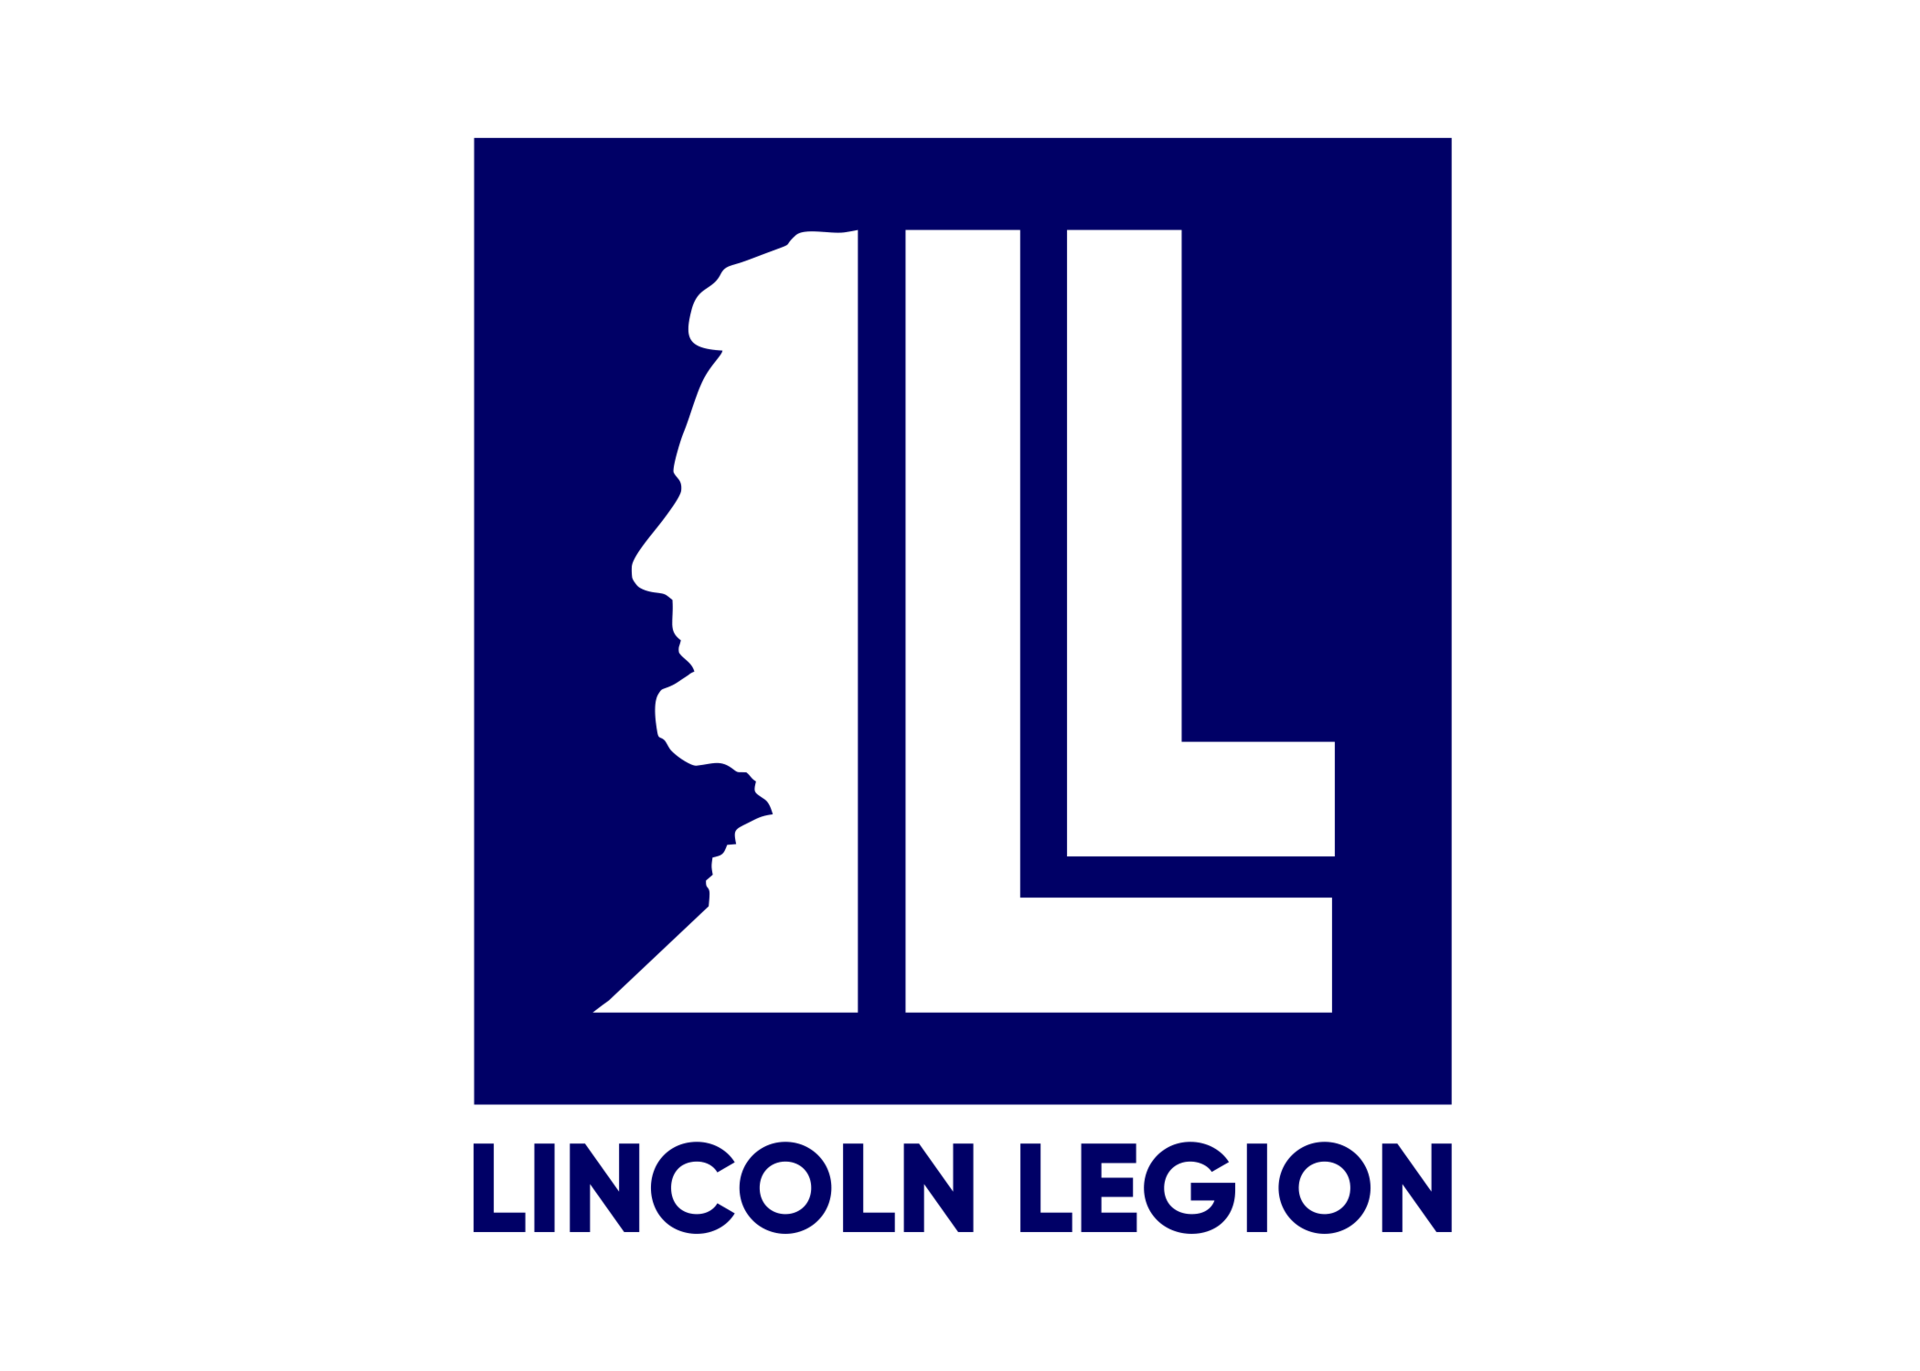 Lincoln legion logo